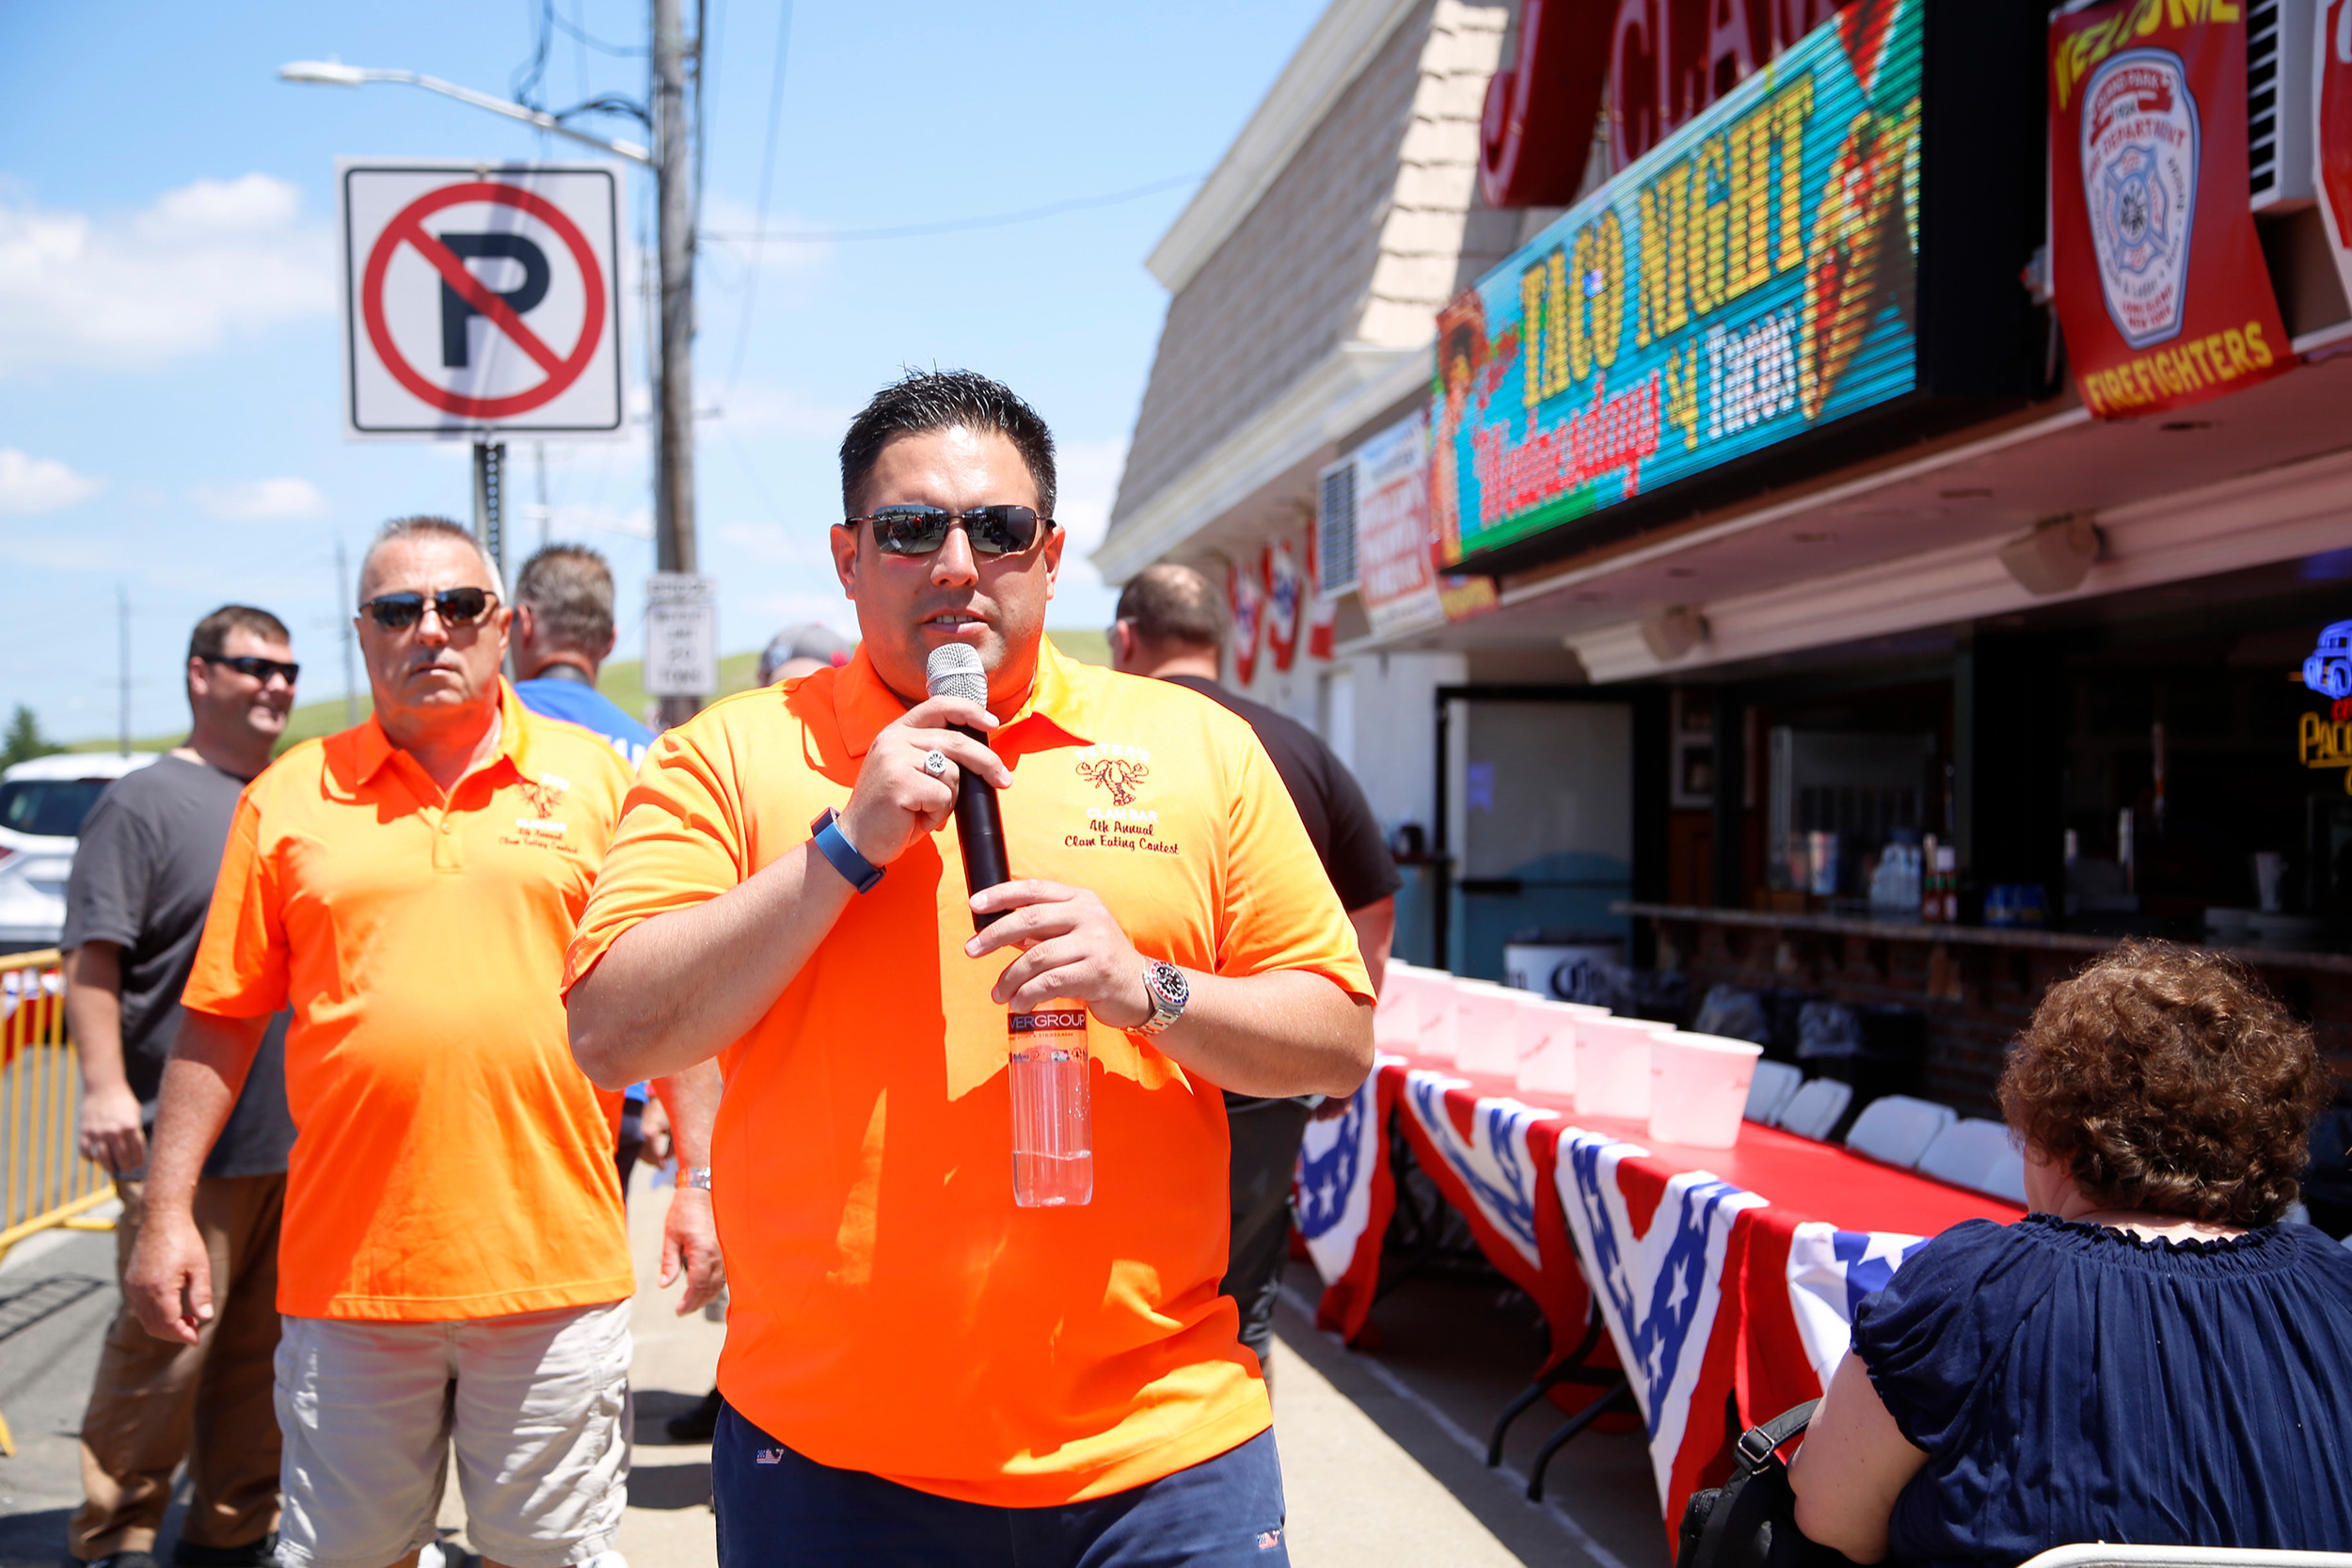 Town Councilman Anthony D'Esposito organizes the contestants.